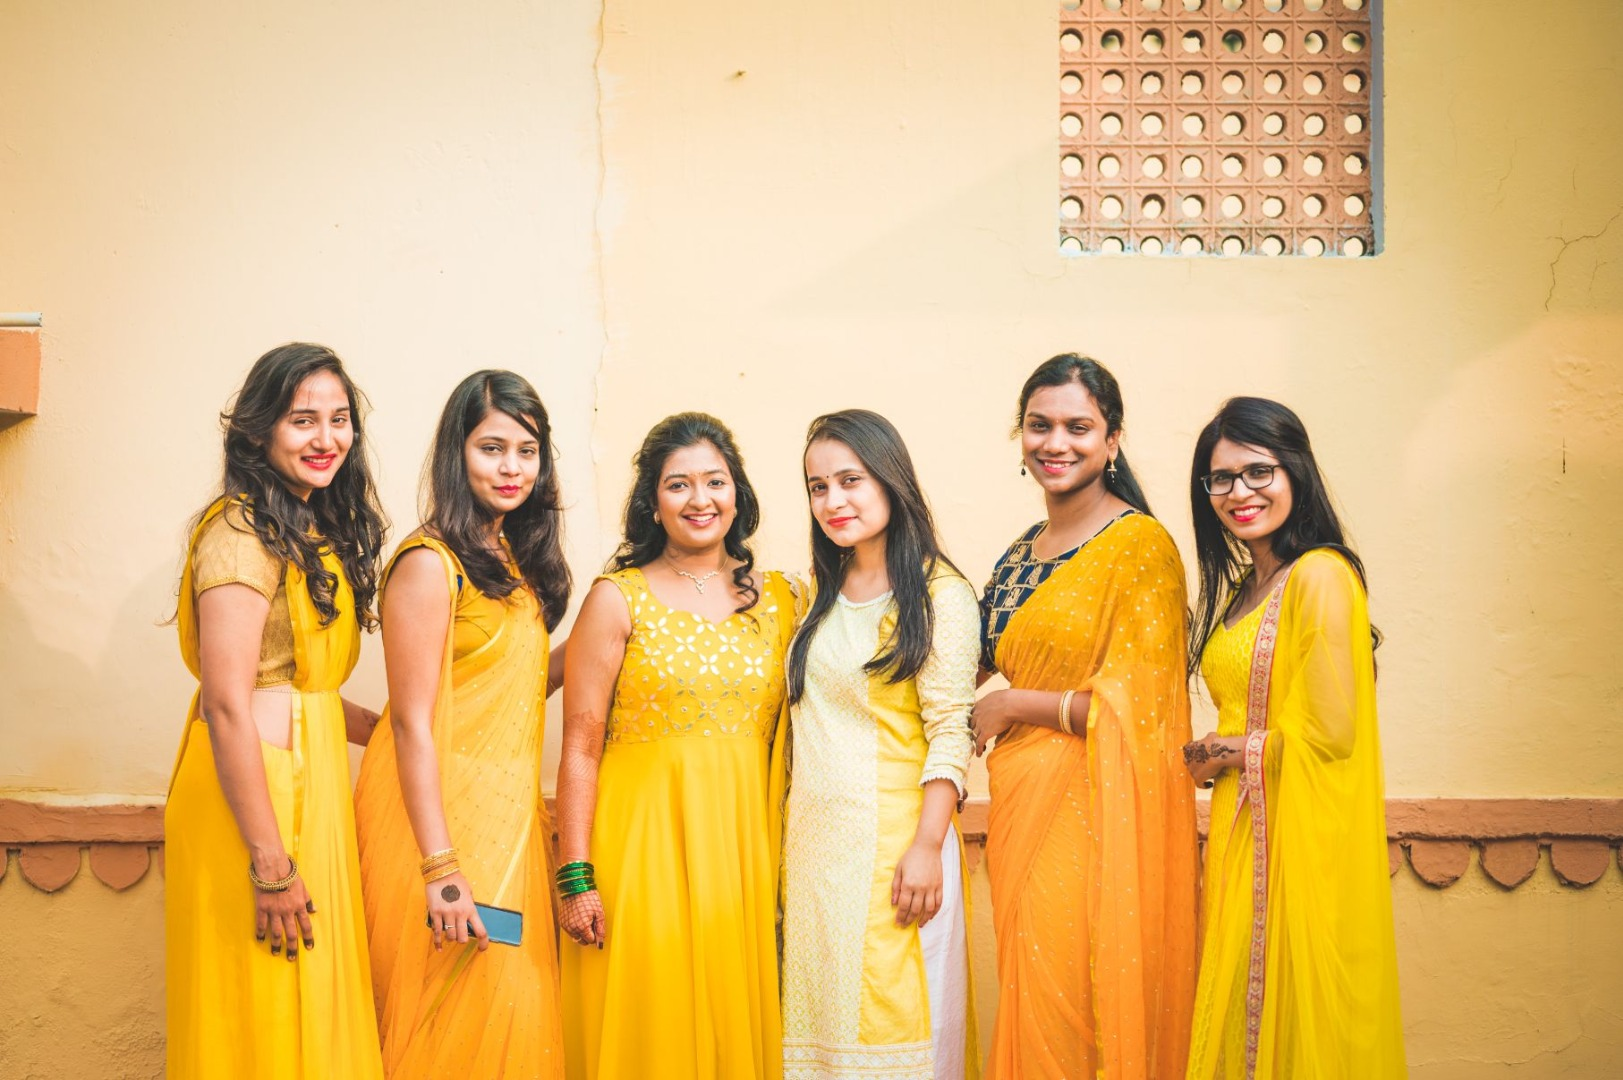 Bridesmaids in Yellow Theme Outfits for Haldi Ceremony